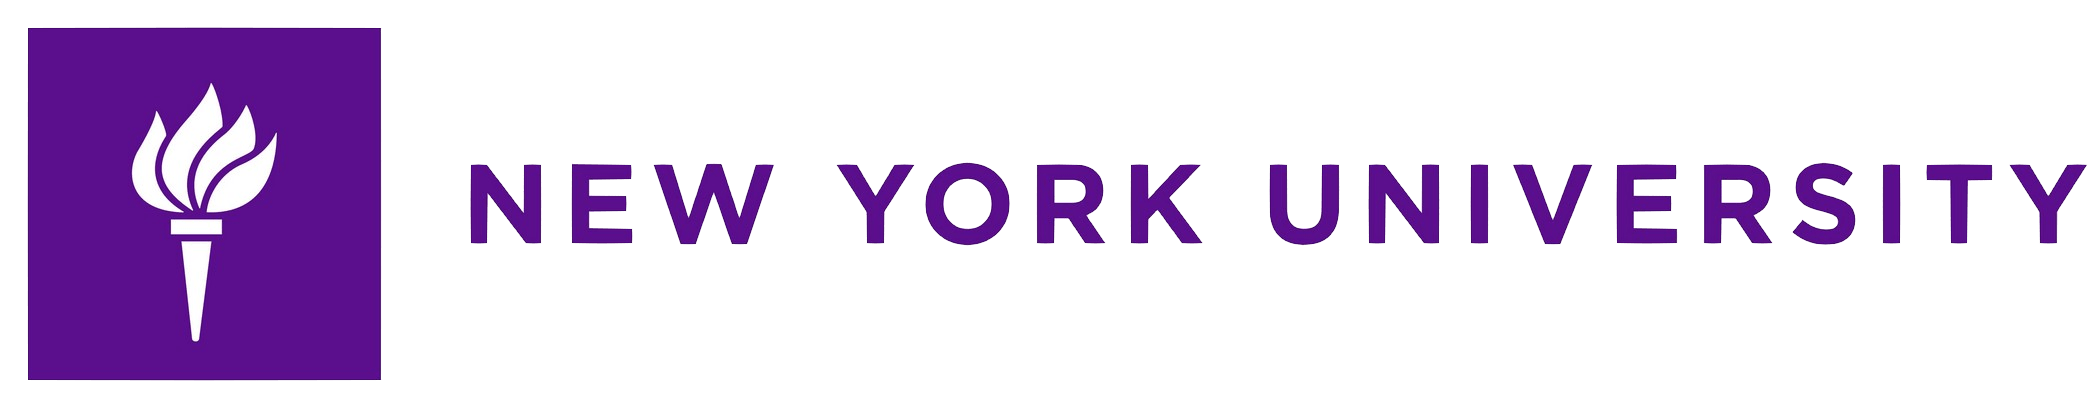 http://www.freelogovectors.net/wp-content/uploads/2018/04/nyu_logo_new_york_university2.png